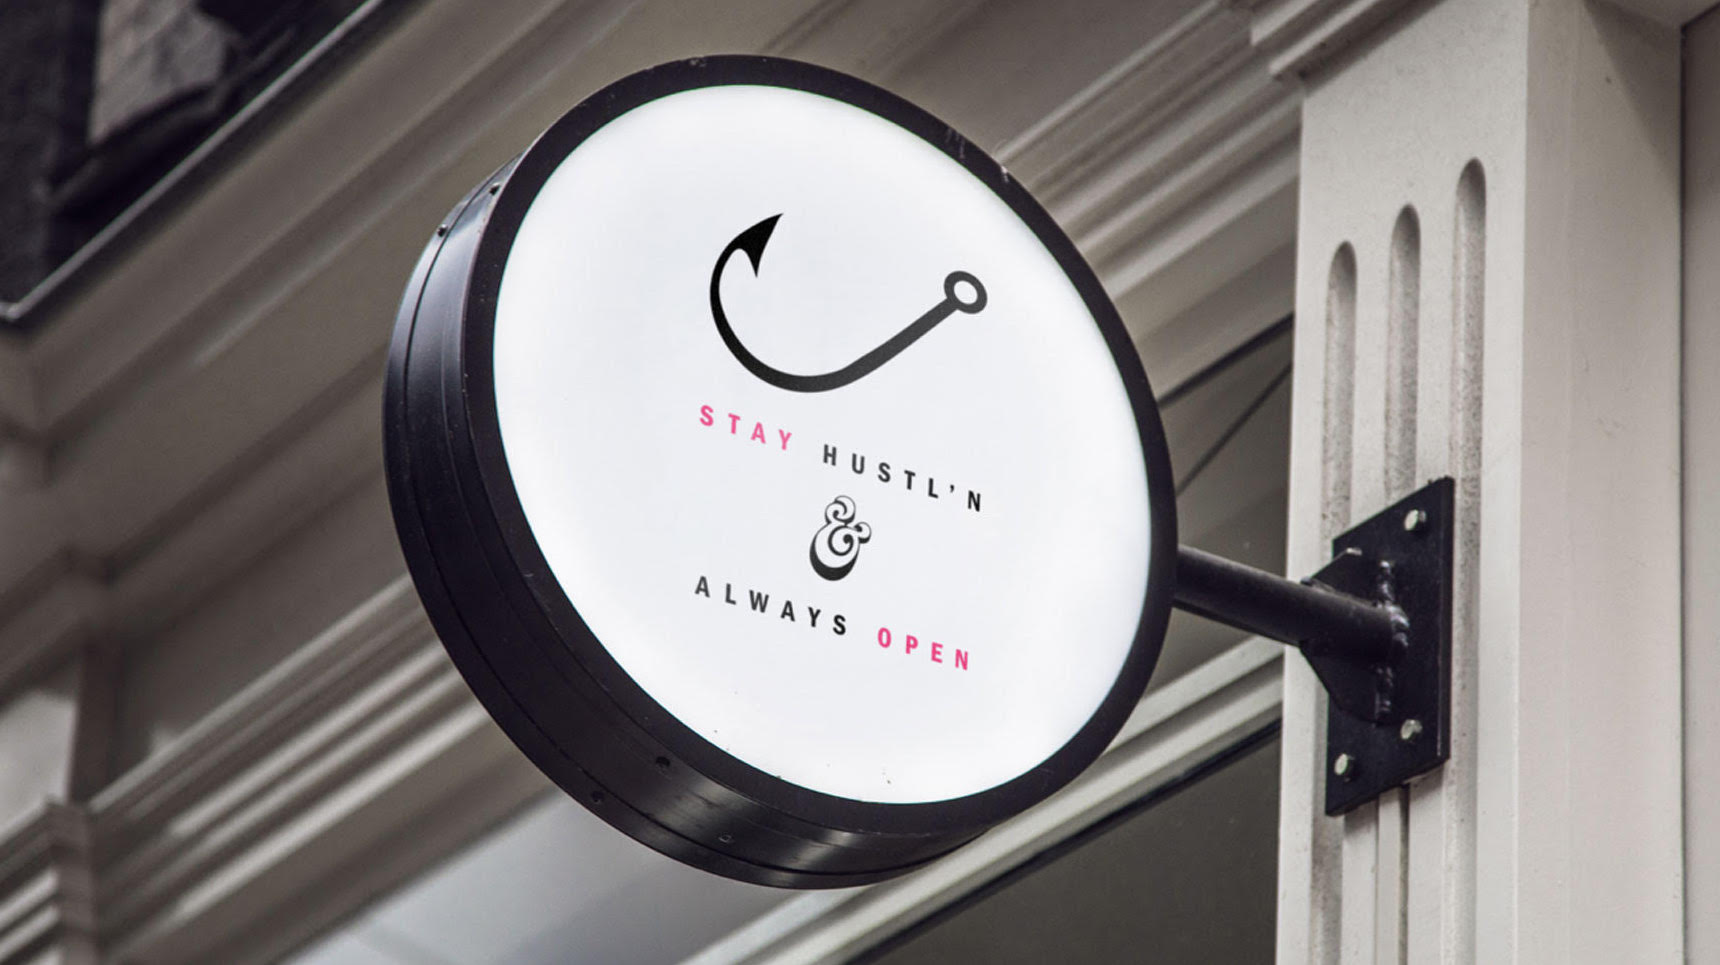 Experience Agency The Bait Shoppe Pledges to Become Carbon Neutral by 2021